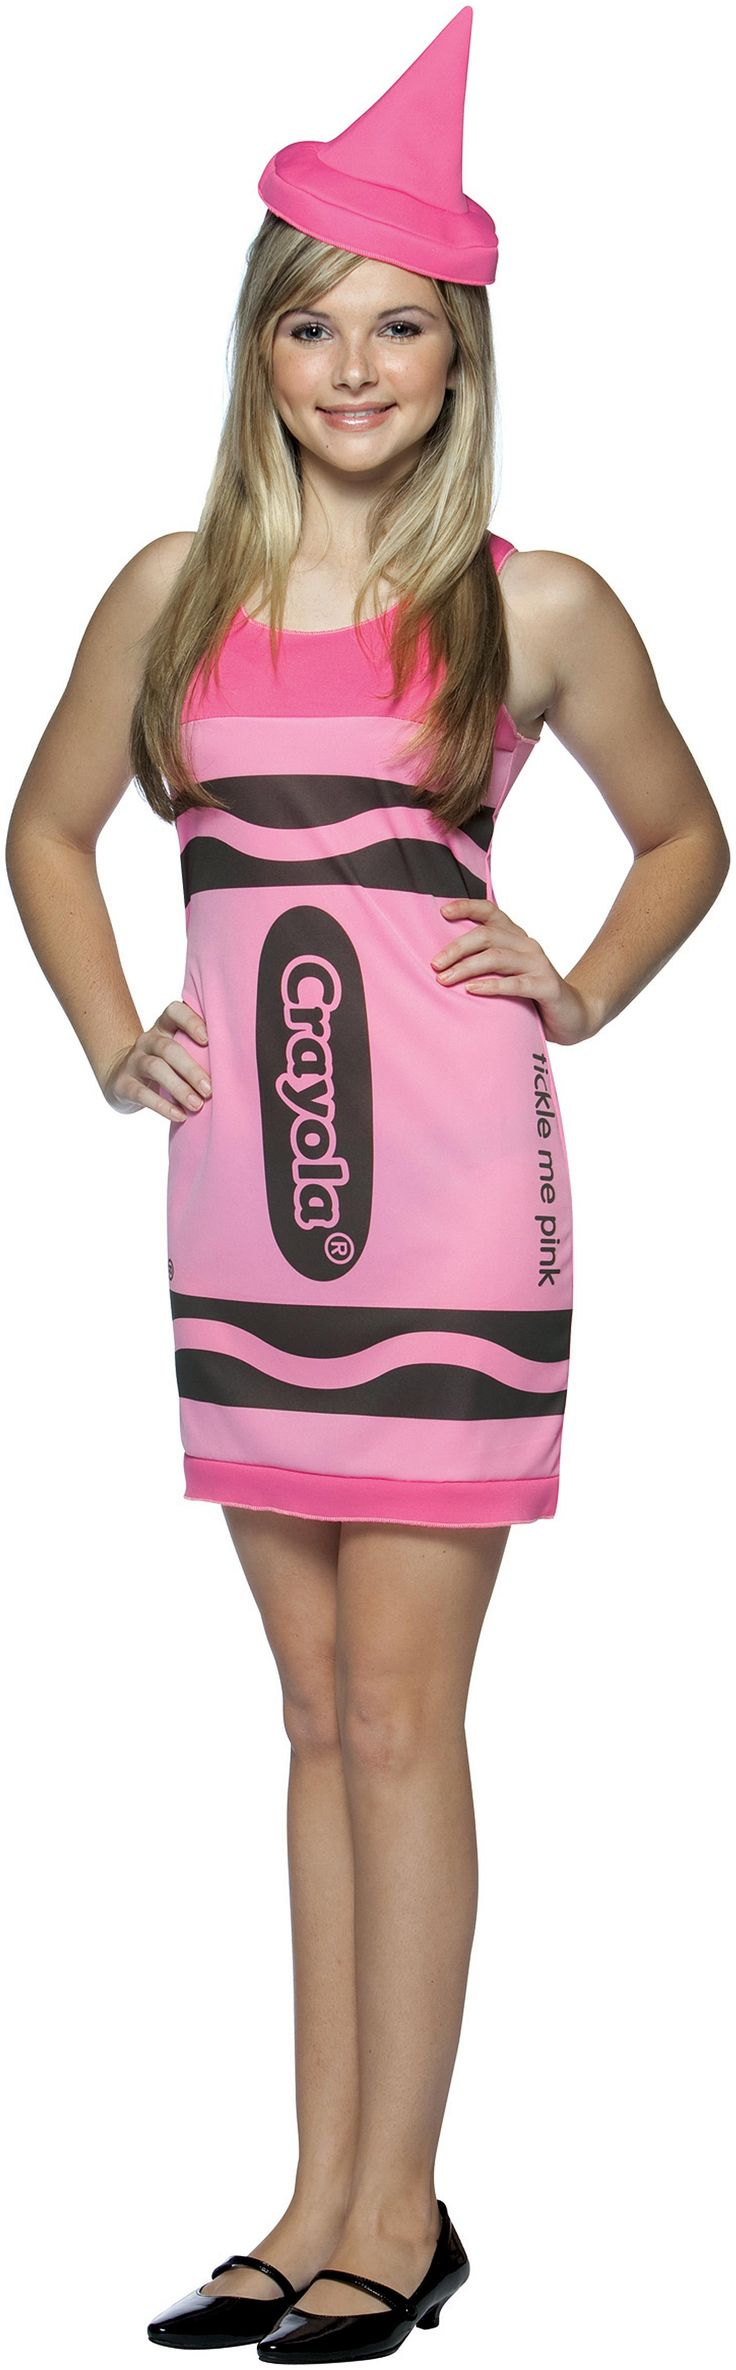 PartyBell.com - Tickle Me Pink Crayola Crayon Teen #Costume